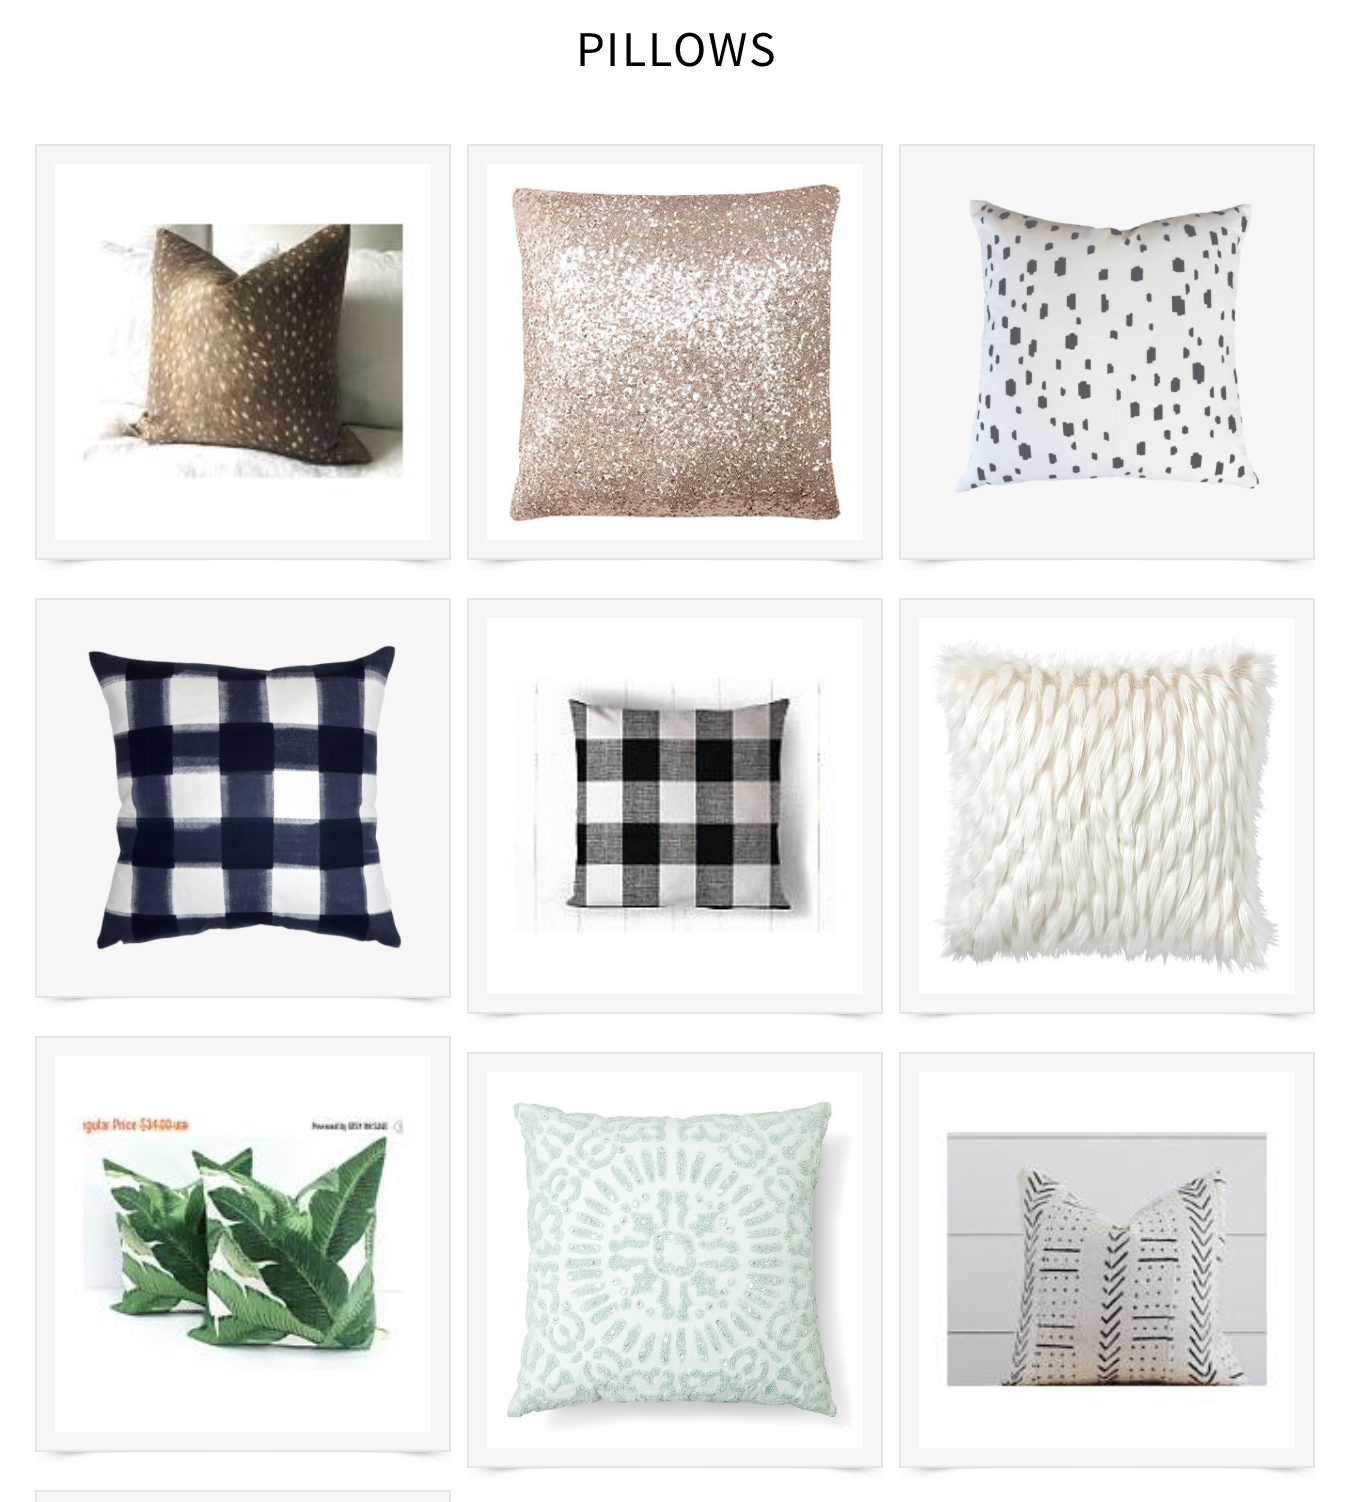 Pillows pillows rounding and chair pillow